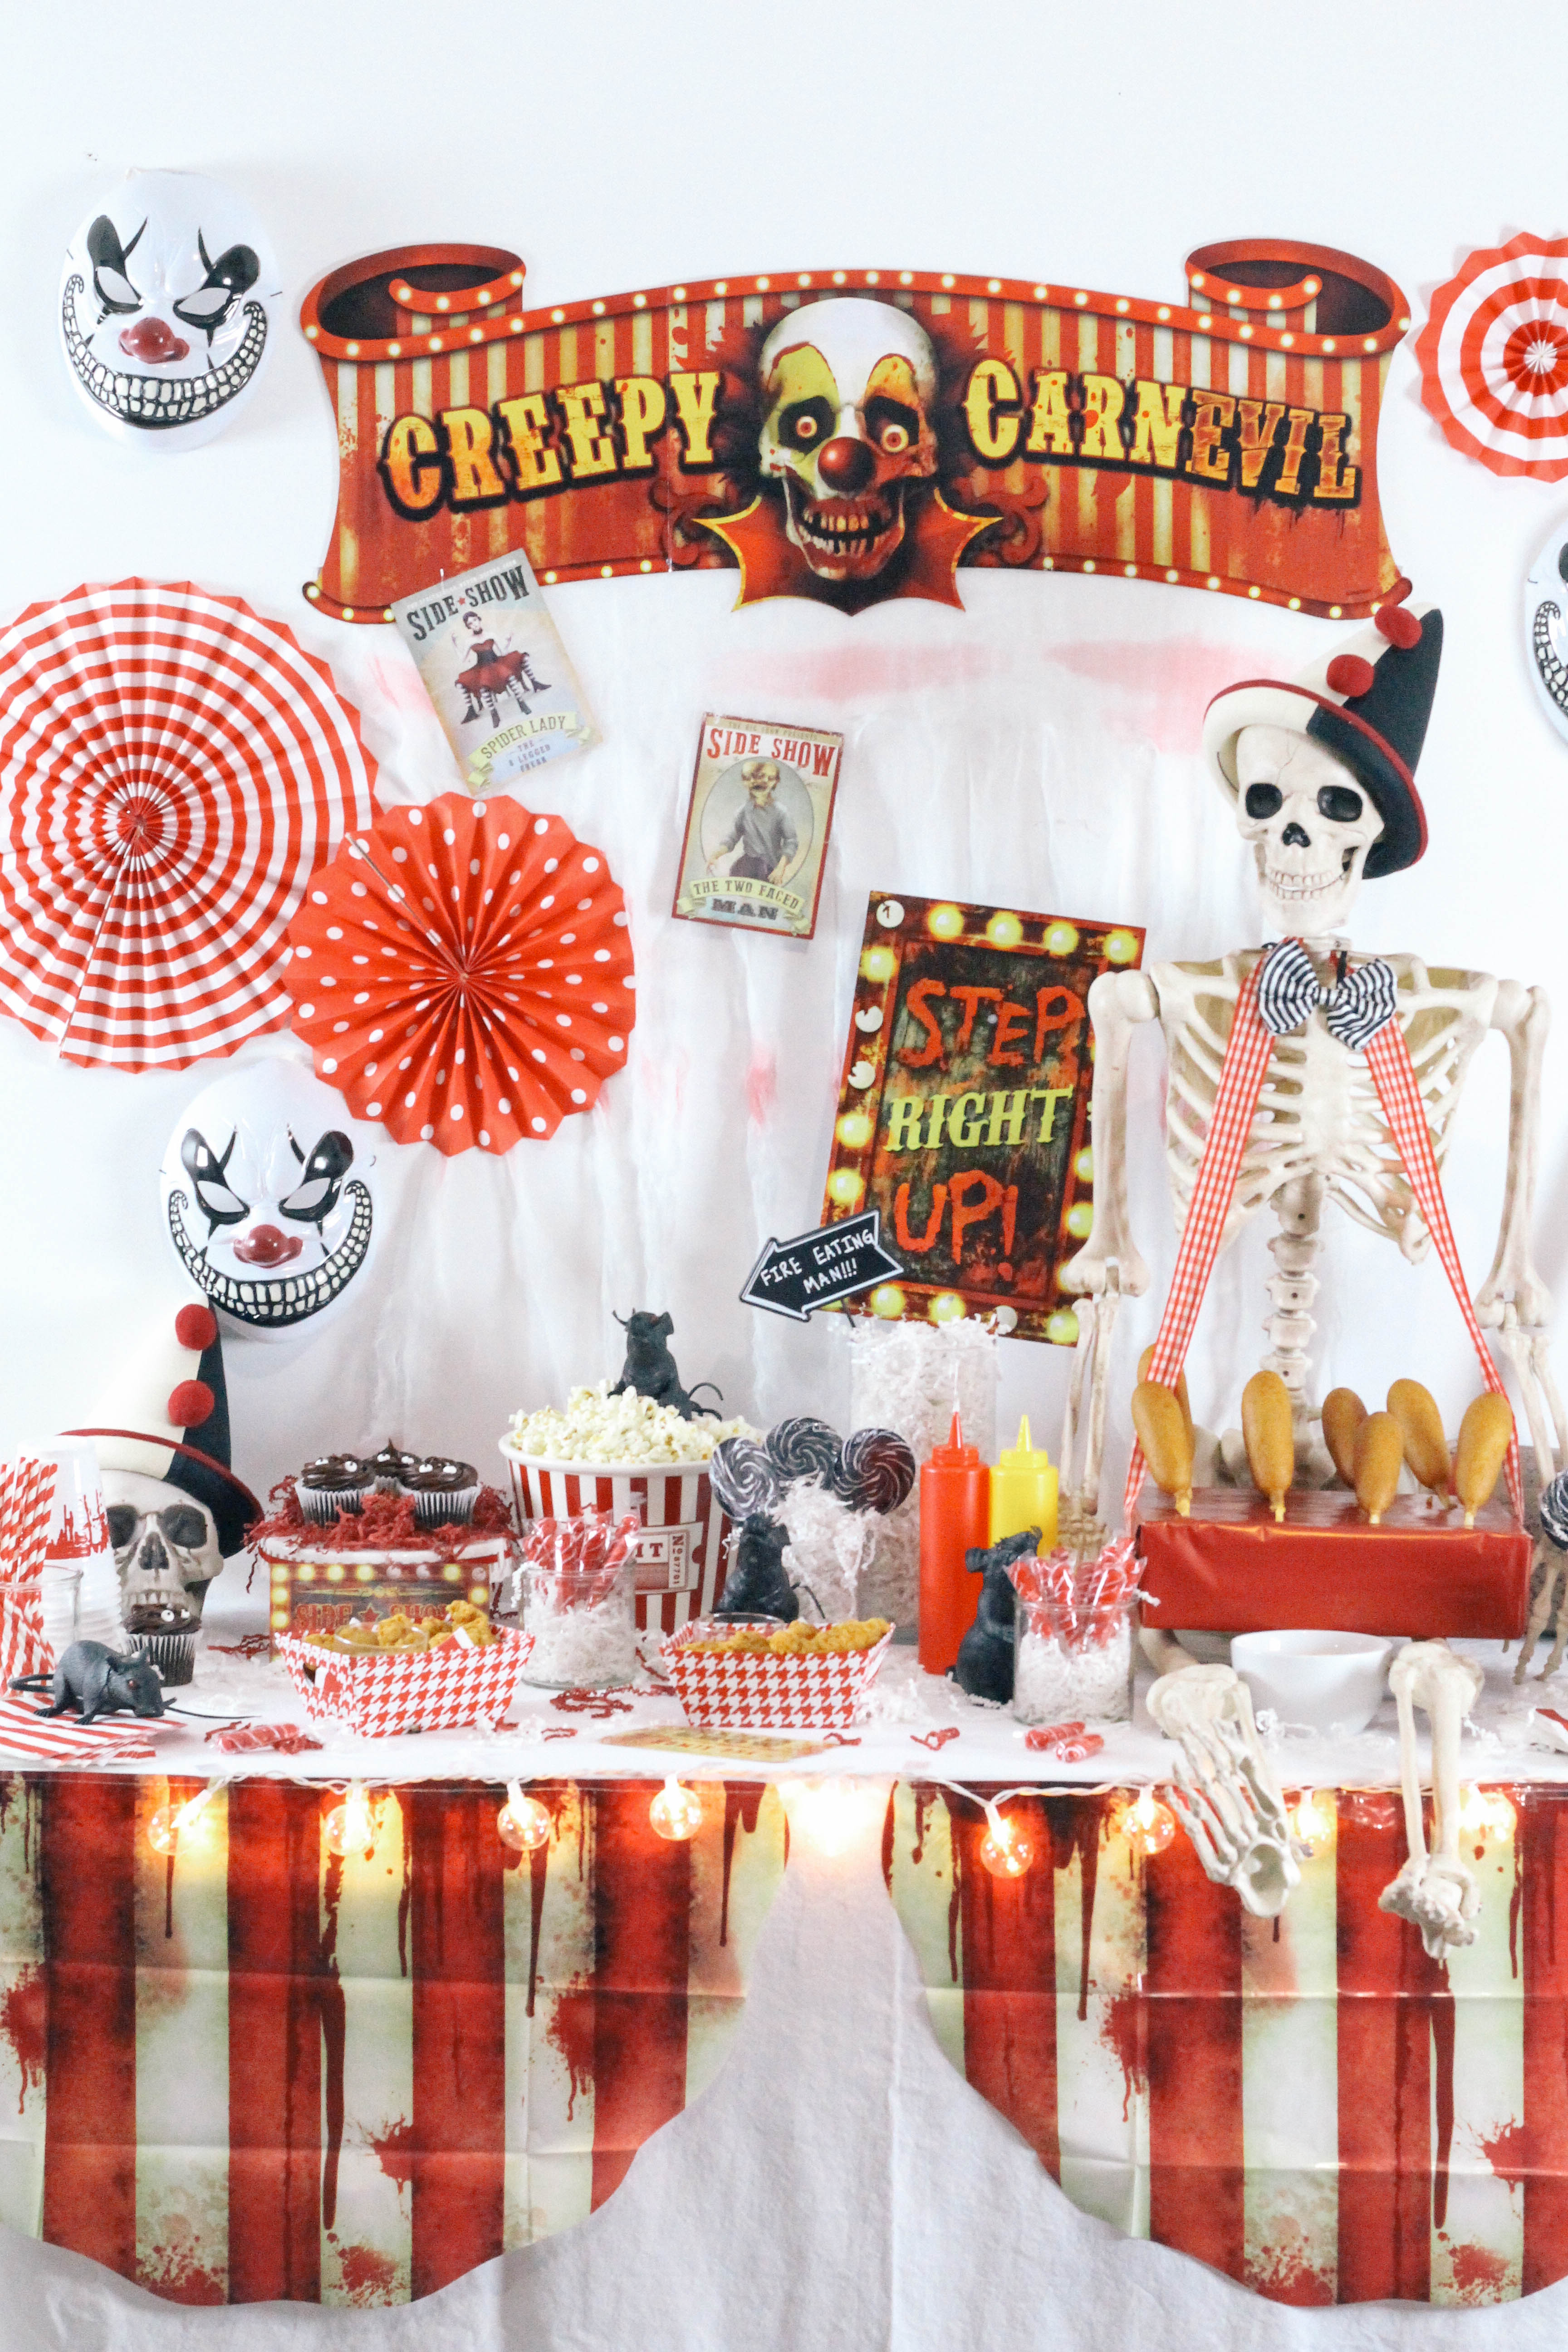 Halloween-Carnival-CarnEVIL-themed-party-tablescape-3